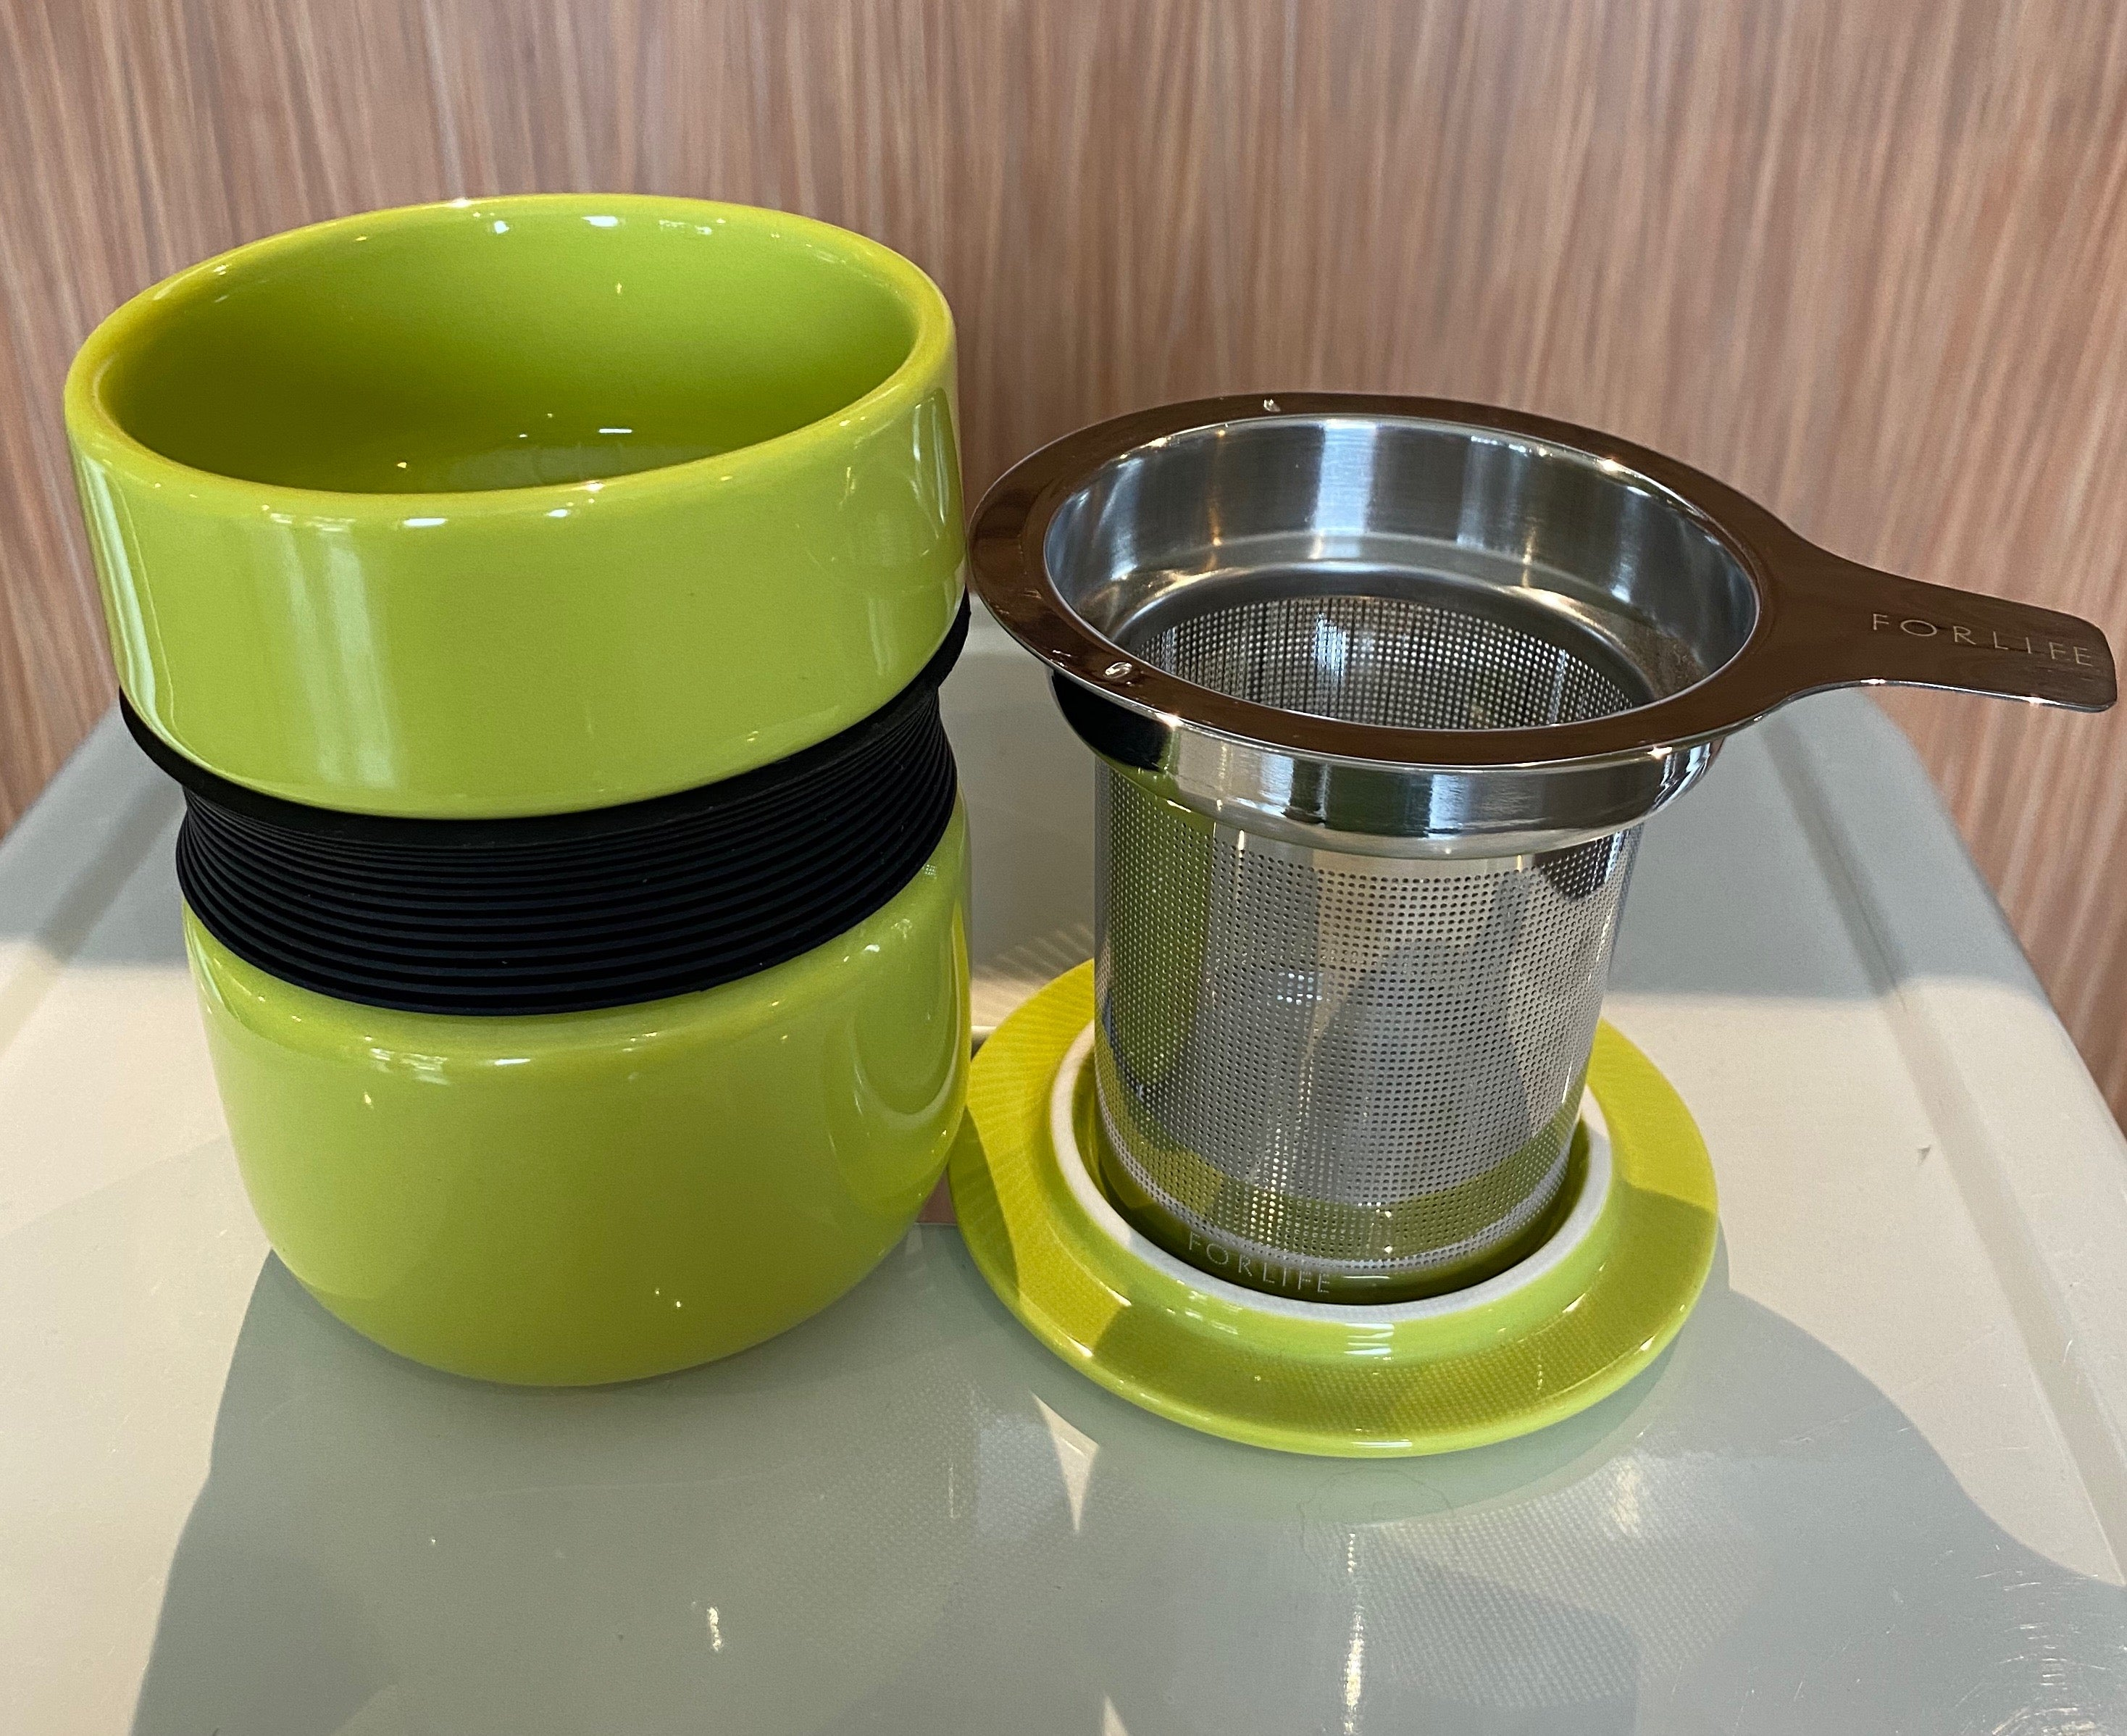 Lime Asian style tea mug with infuser & lid, For Life brand